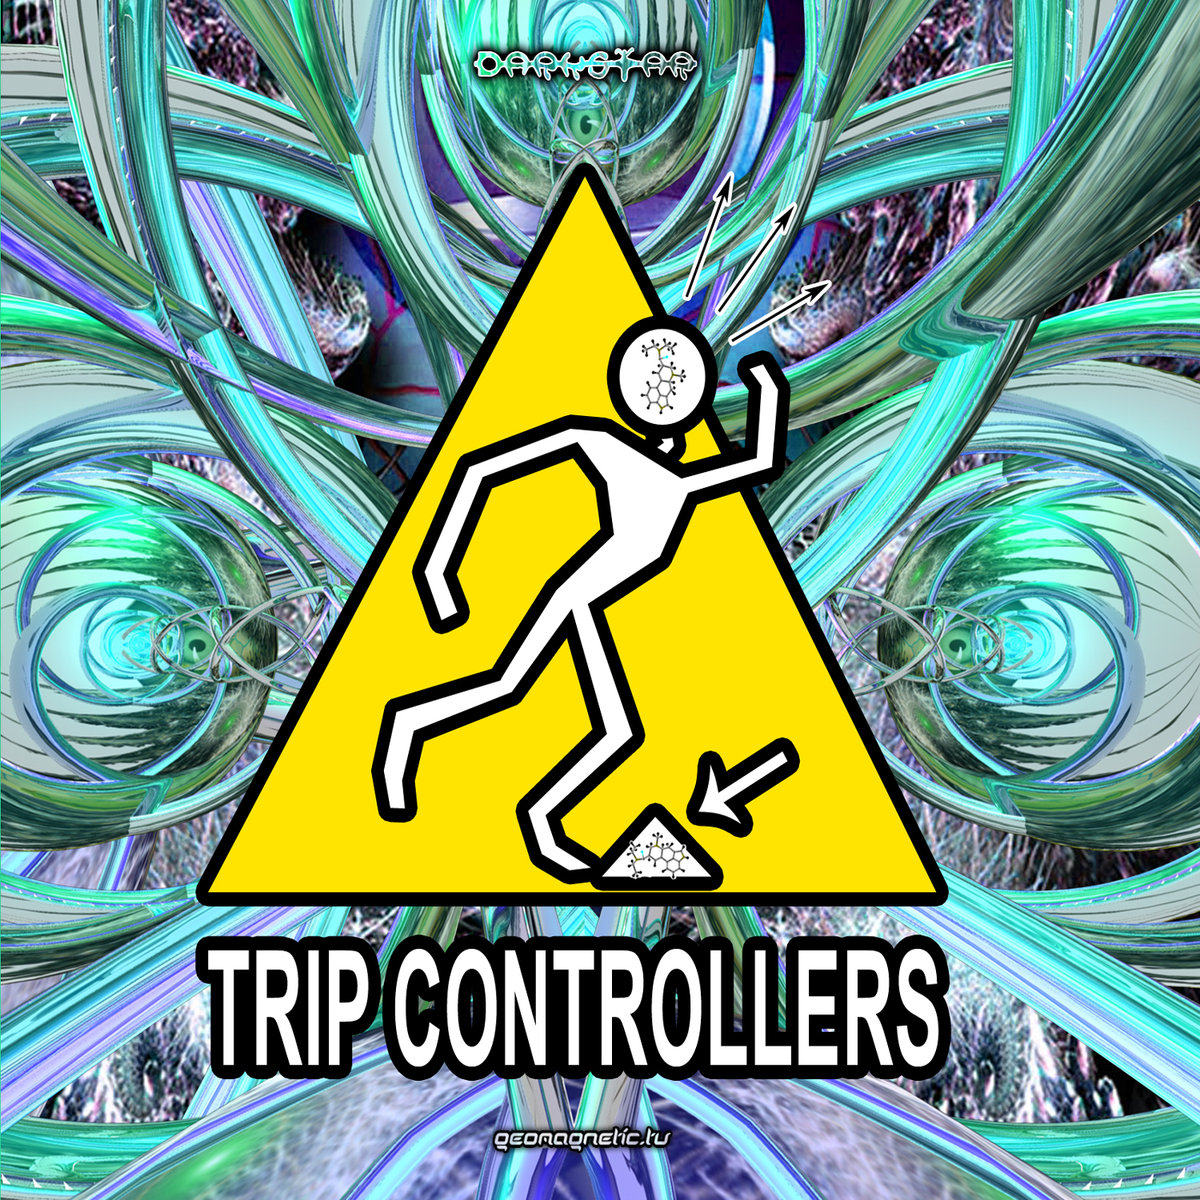 Audiopathik - Traumatik Amnesia @ 'Various Artists - Trip Controllers (Compiled by Dr. Spook)' album (electronic, goa)